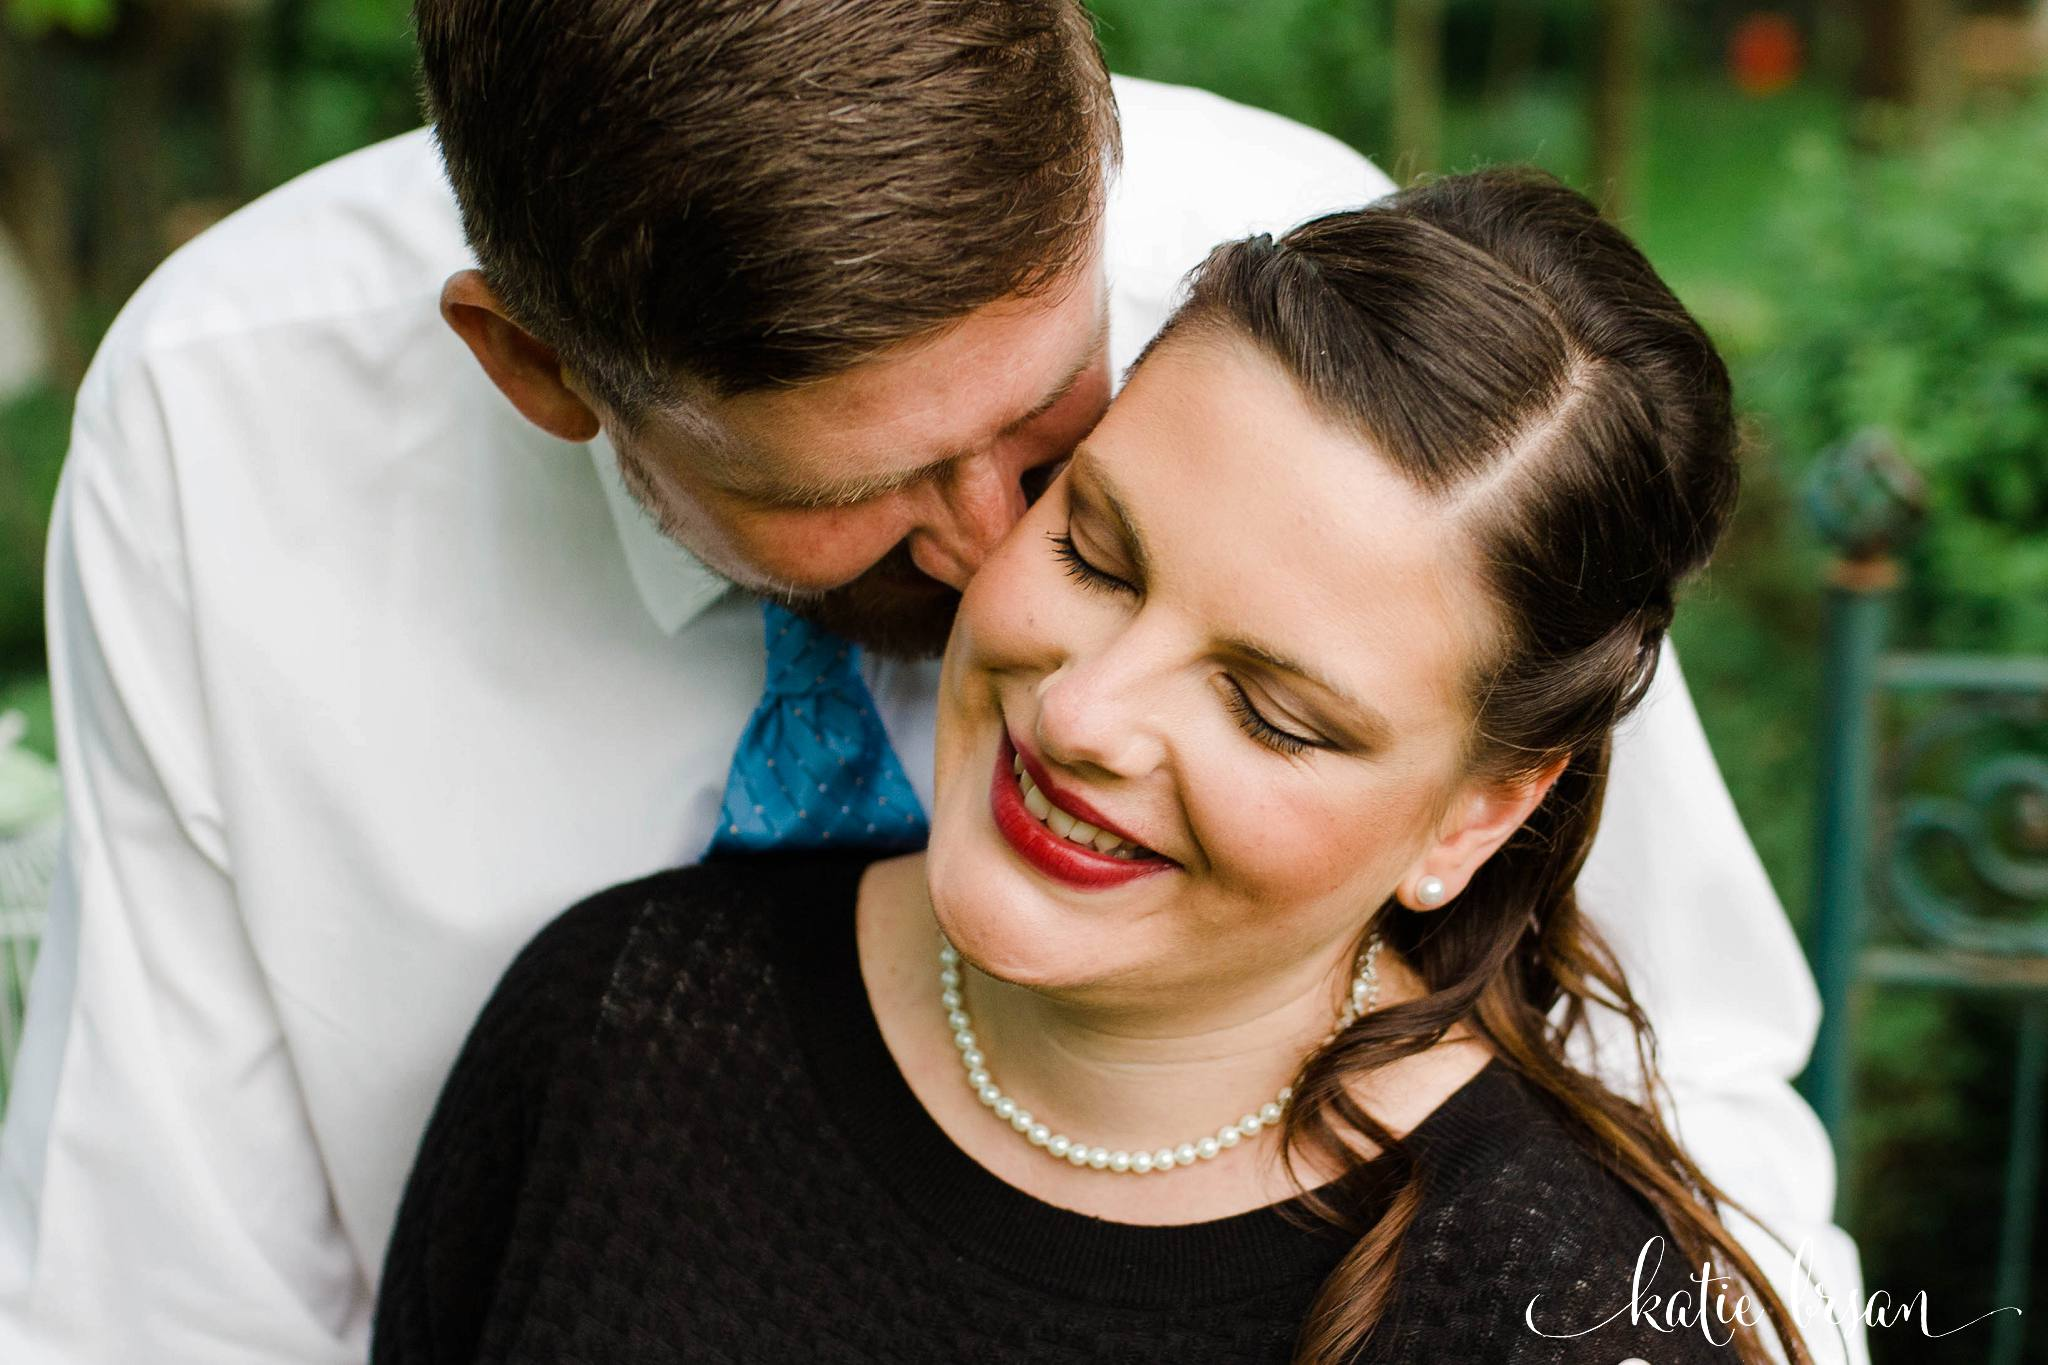 KatieBrsan-HomerGlen-NewLenox-EngagementSession-HadleyValley-TeacherEngagementSession-ChicagoWeddingPhotographer_0586.jpg